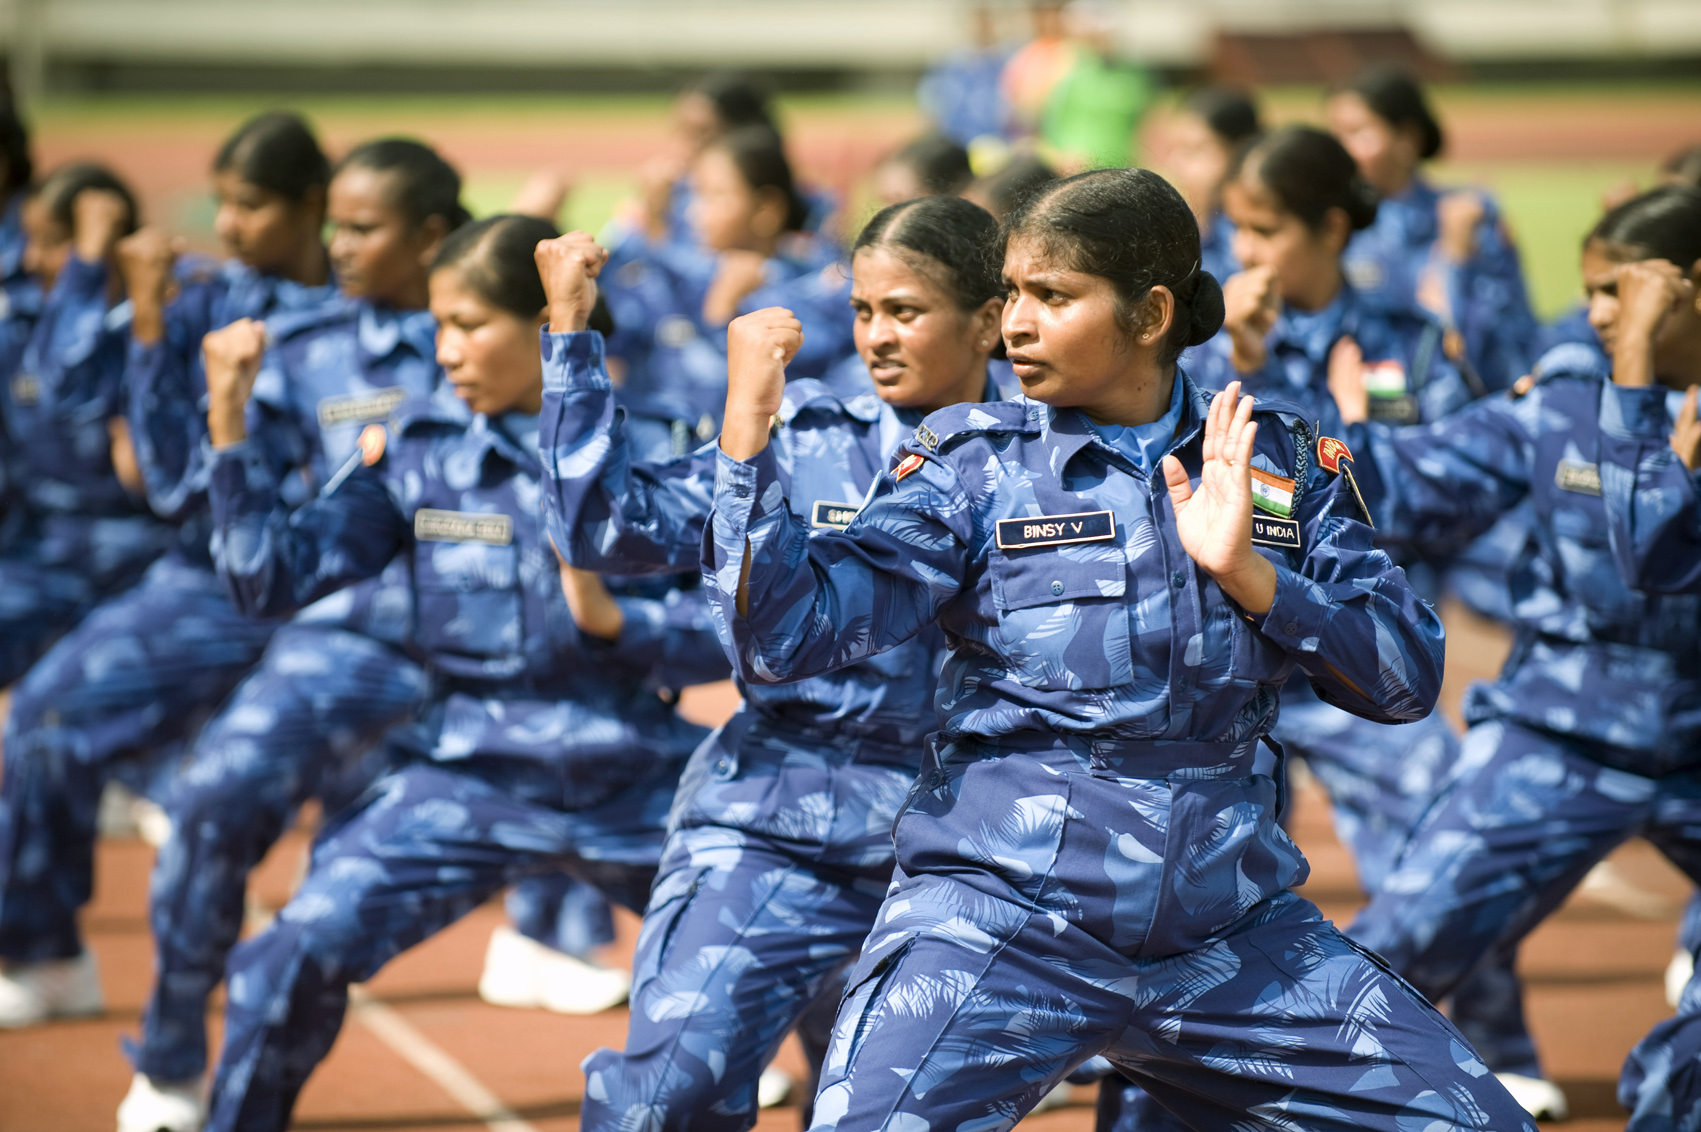 Members of an all-female Indian police unit of the UN mission in Liberia